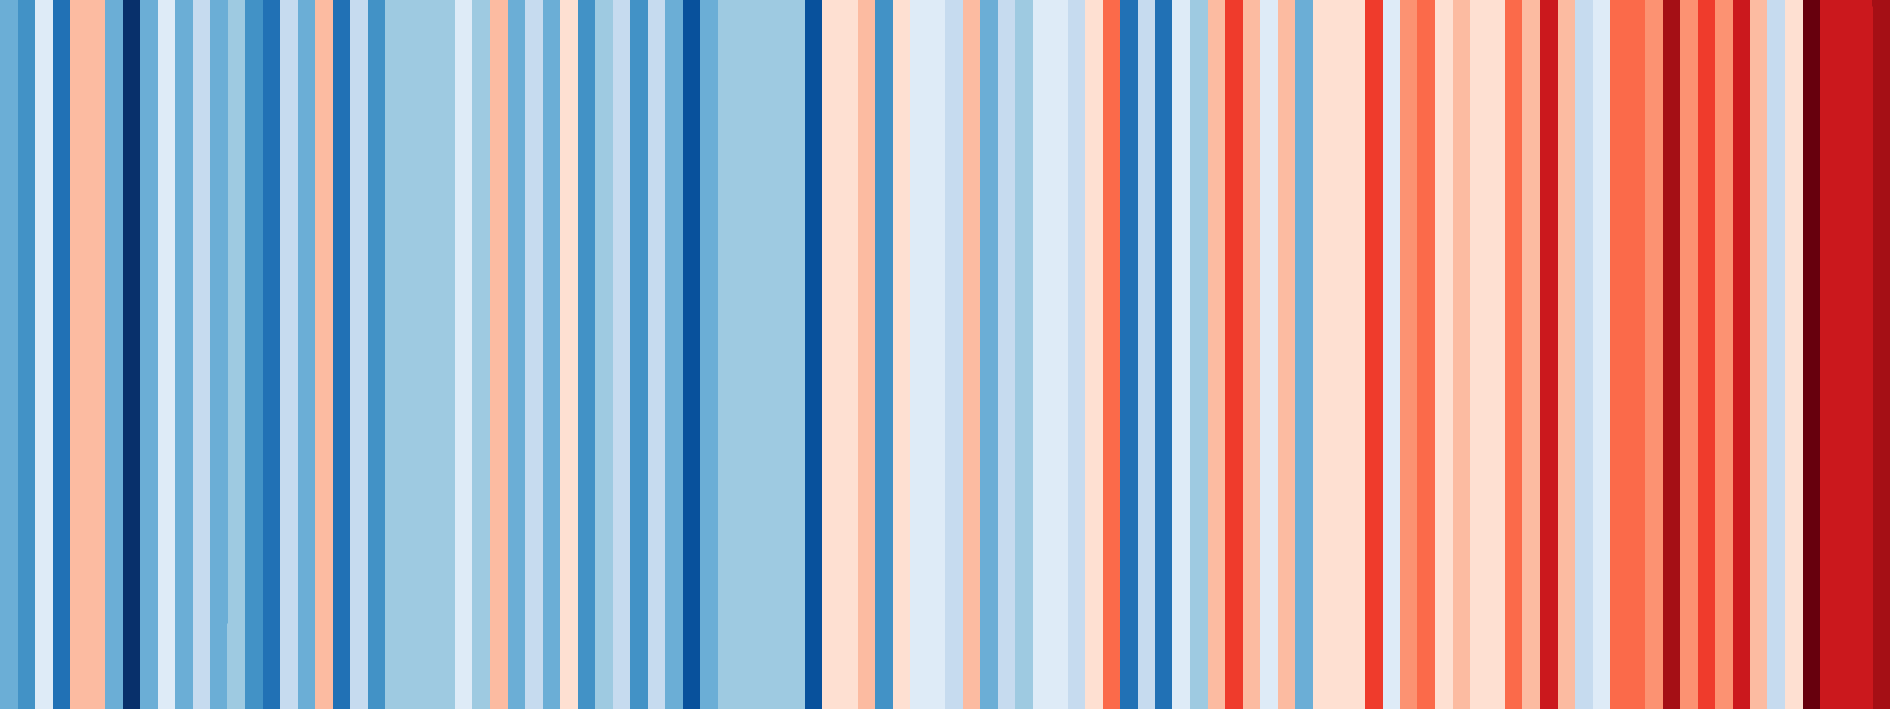 Warming stripes - Annual temperatures for Australia (1910-2017)